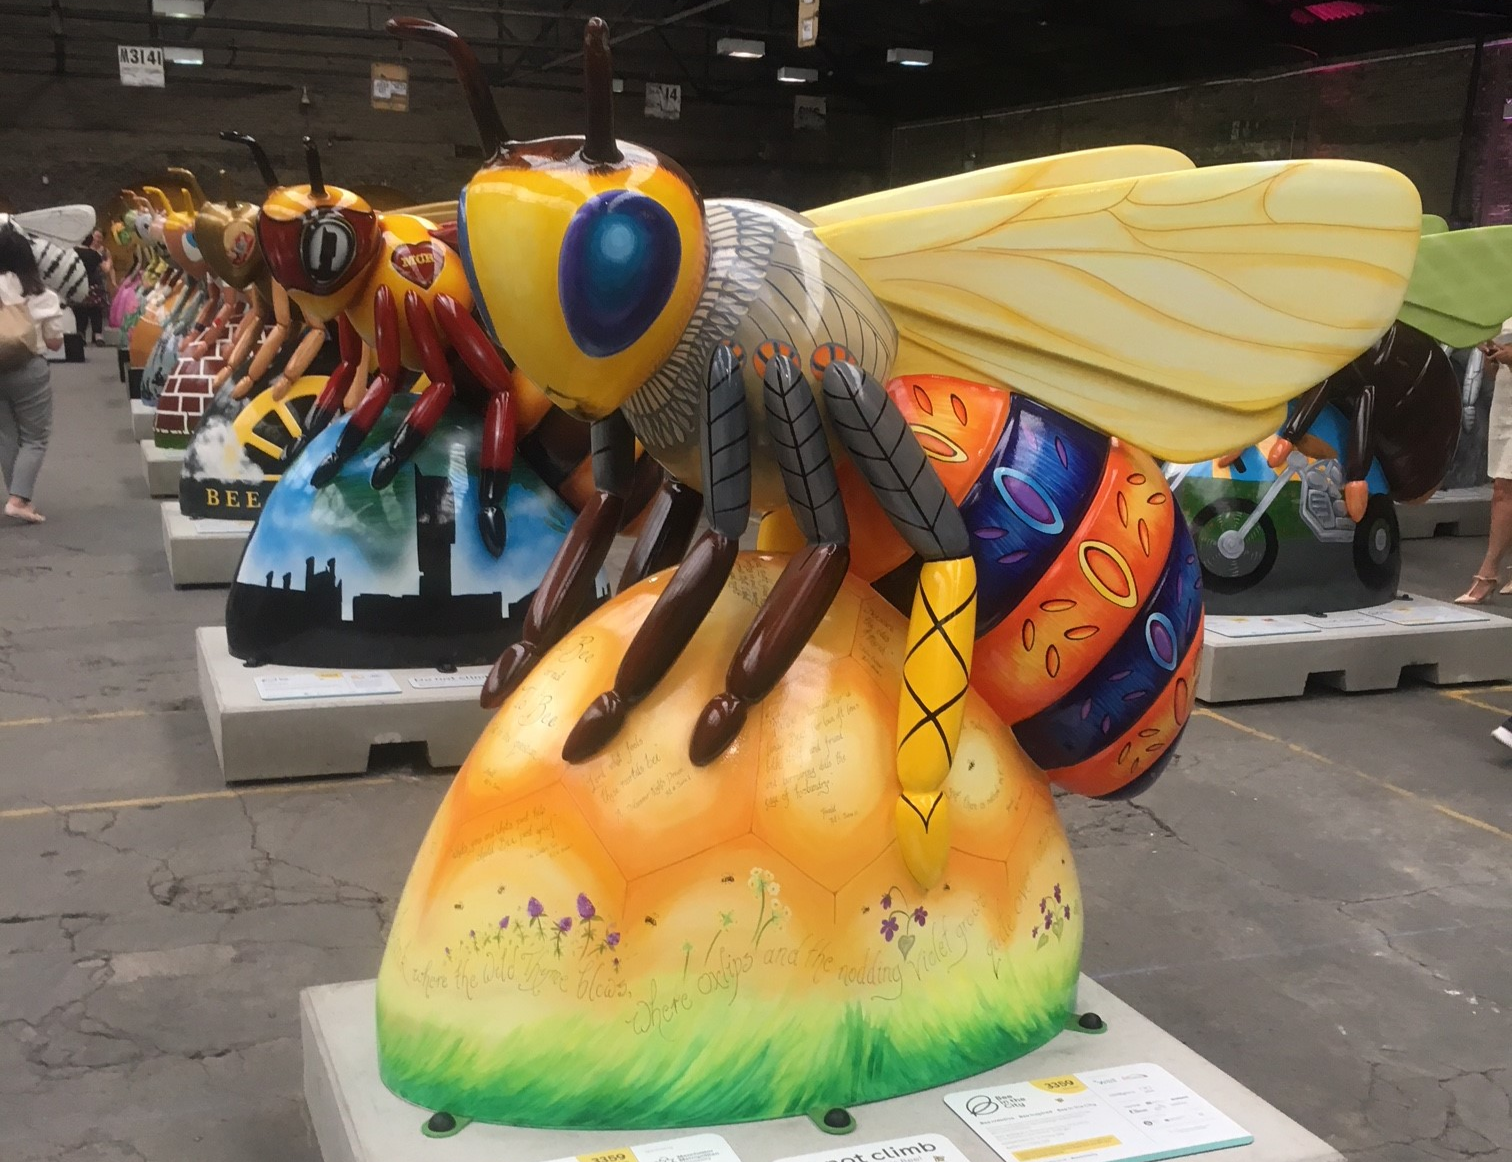 First glimpse of our Shakespeare bee!